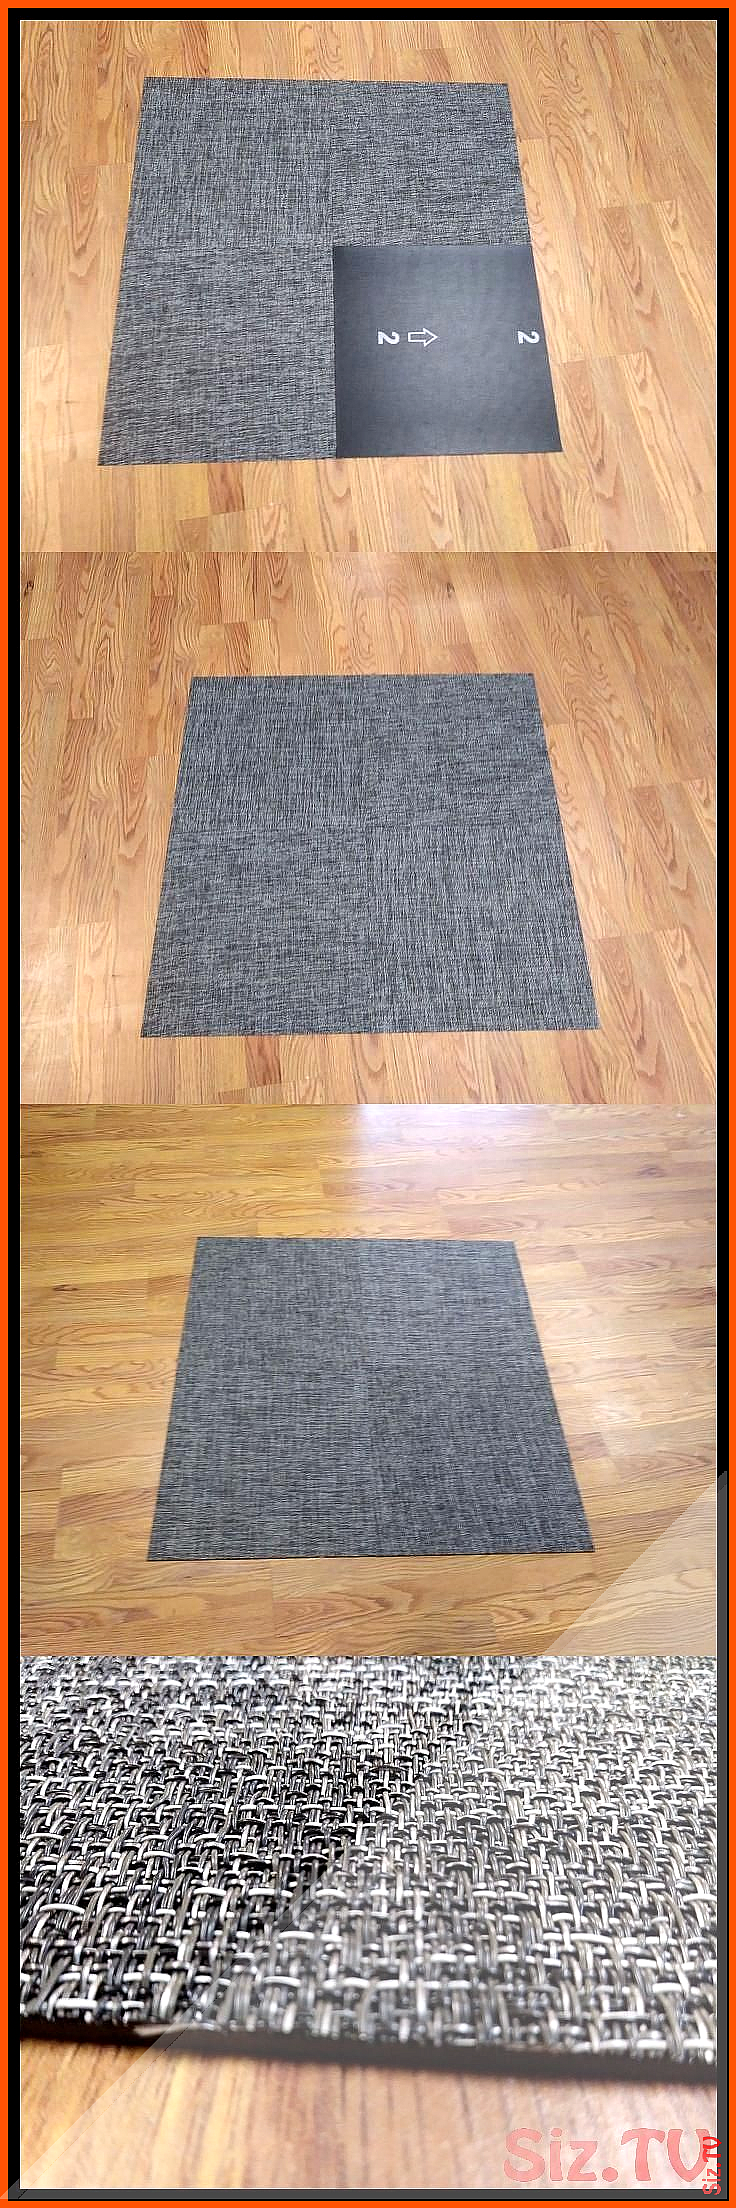 Latest Absolutely Free Carpet Tiles Grey Ideas If You Re Looking To Include A New Area Rug Or Runner To A Room Or Hallway Take A Look At Carpet A La